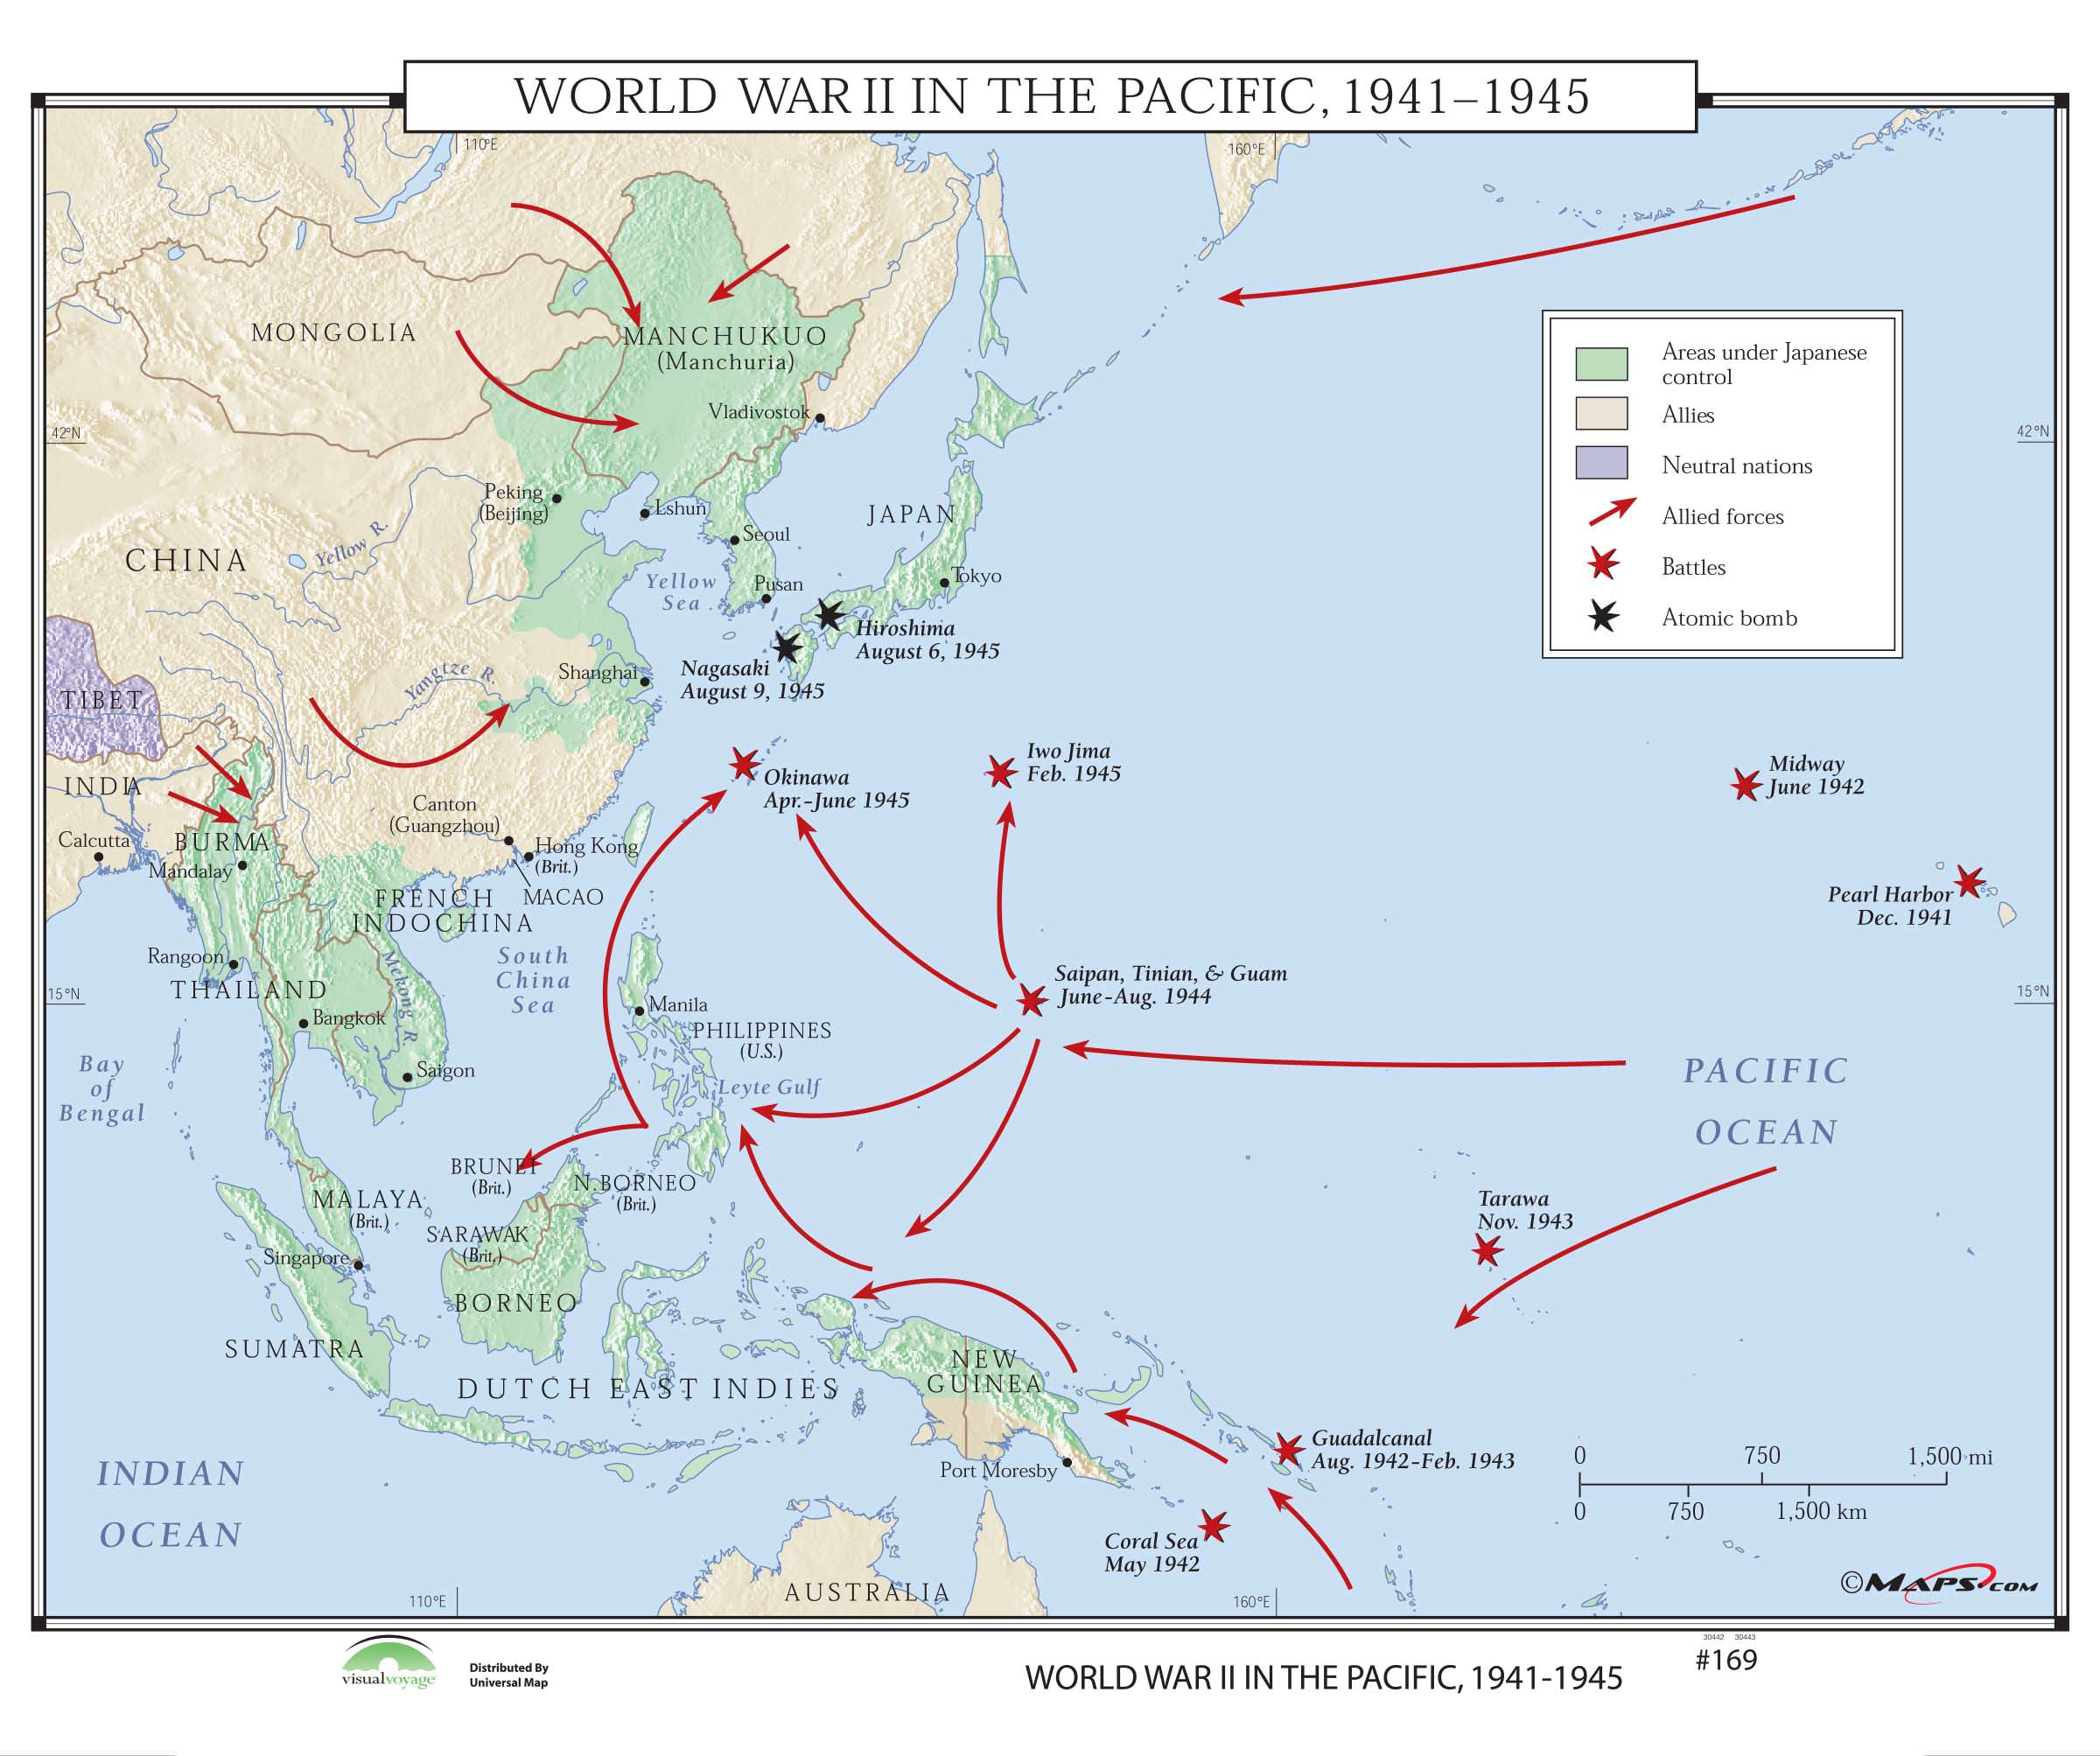 #169 World War II in the Pacific, 1941-1945 on Roller w ...